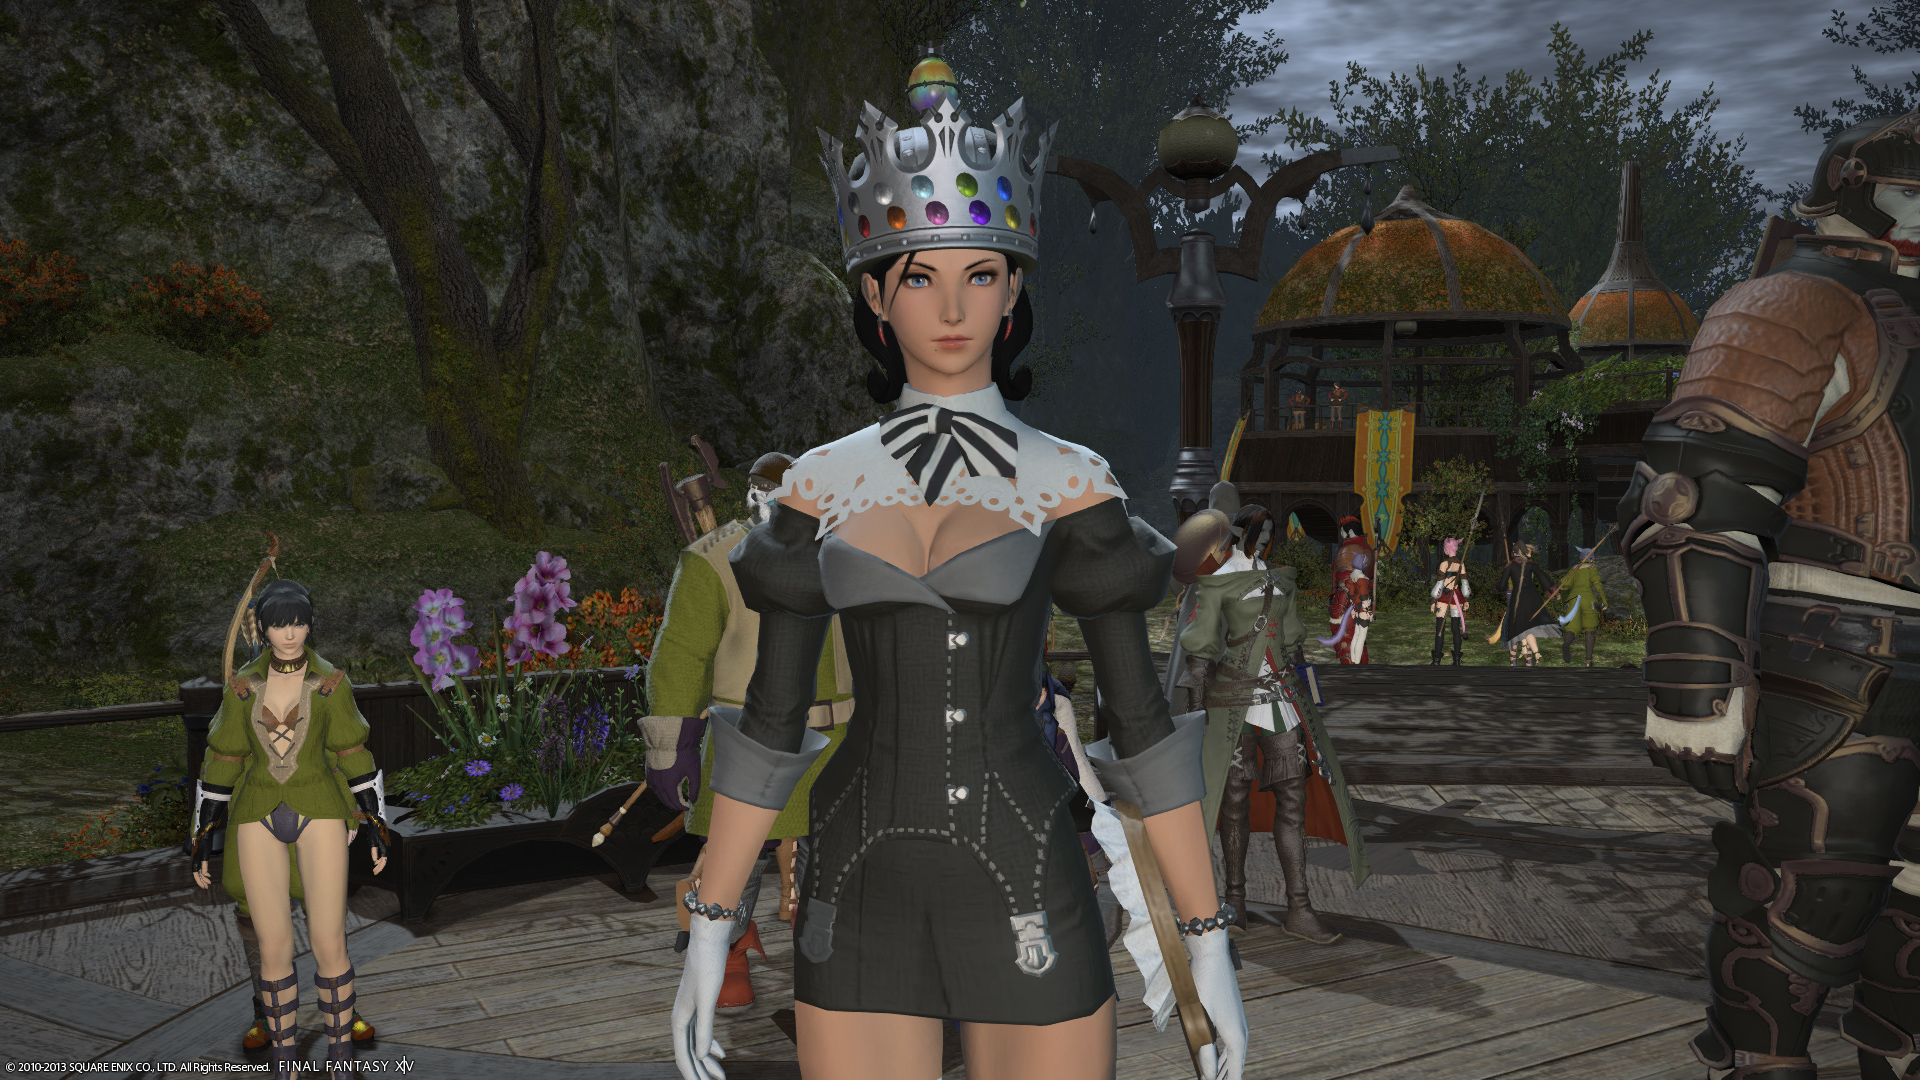 monkor ffxiv cute fantastic awesome picture this comment cheesecake phase contest wanted just